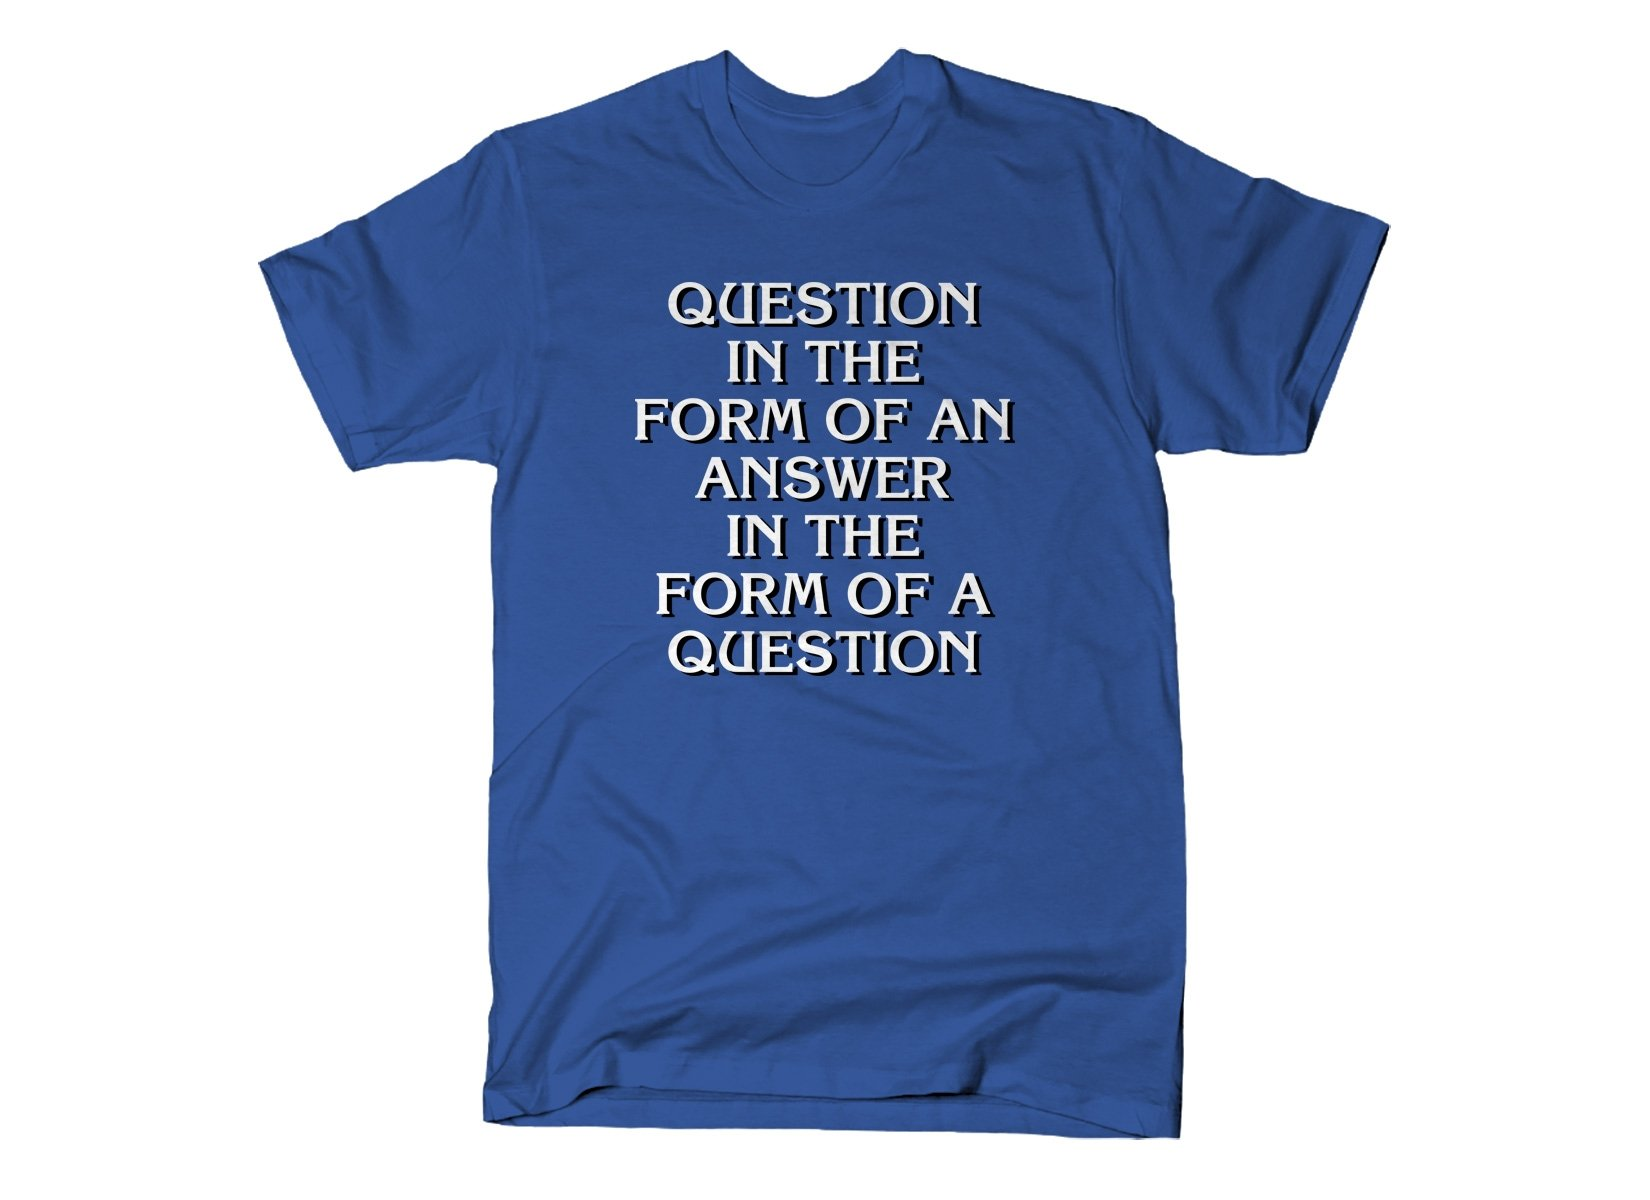 Question In The Form Of An Answer on Mens T-Shirt